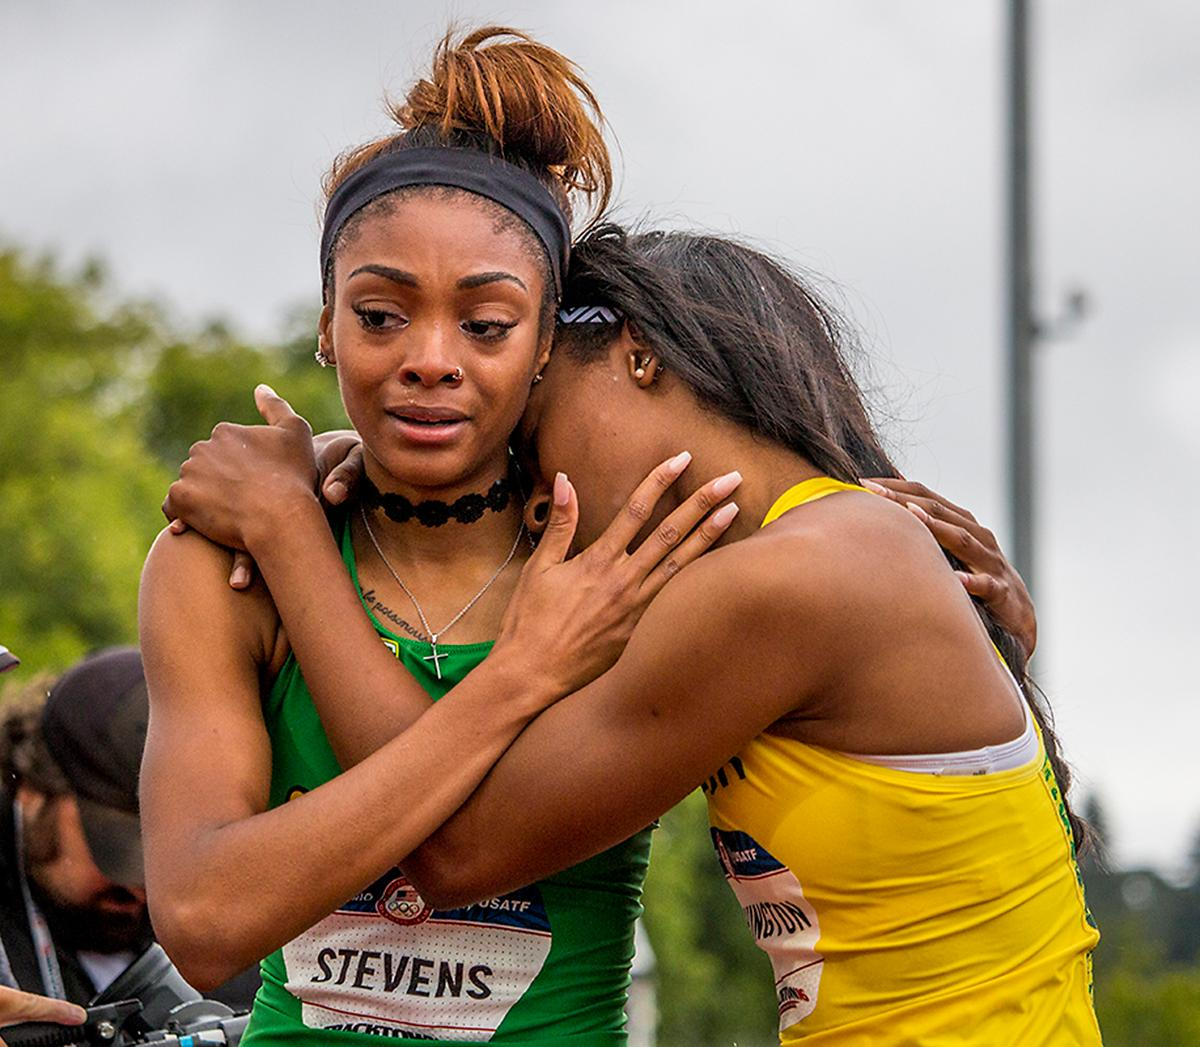 Oregon Ducks Deajah Stevens and Ariana Washington embrace eachother after the women�s 200 meter dash finals. Stevens placed second in 22.30 seconds sending her to competition in Rio. Day Ten of the U.S. Olympic Trials Track and Field concluded on Sunday at Hayward Field in Eugene, Ore. Competition lasted July 1 - July 10. Photo by Katie Pietzold